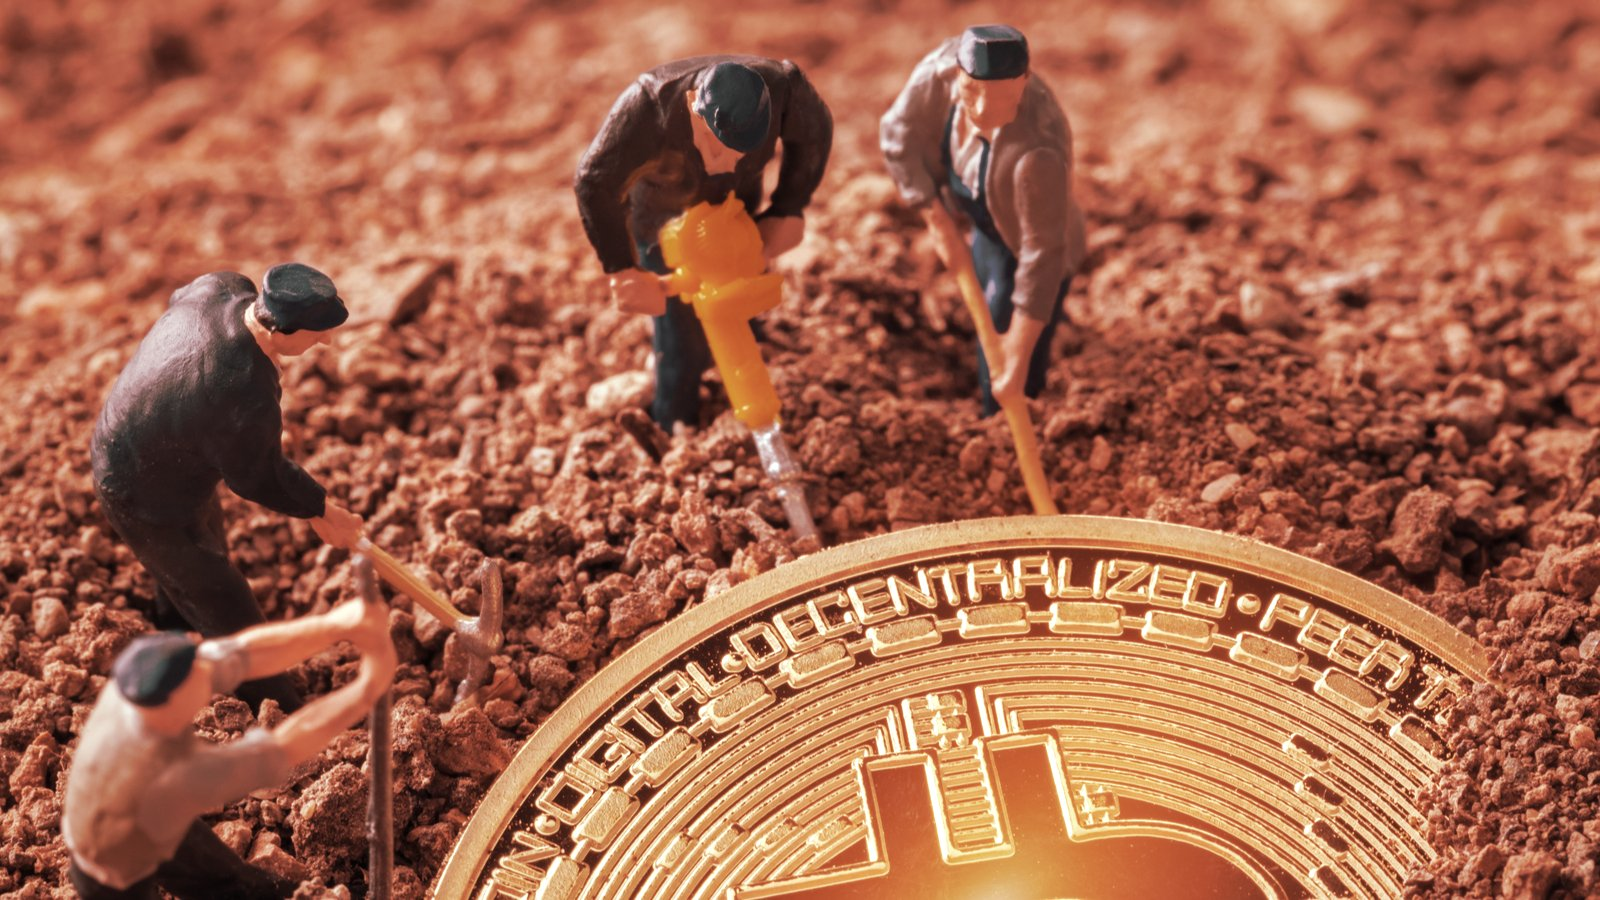 Bitcoin's Hash Rate Rises After China's Miner Exodus